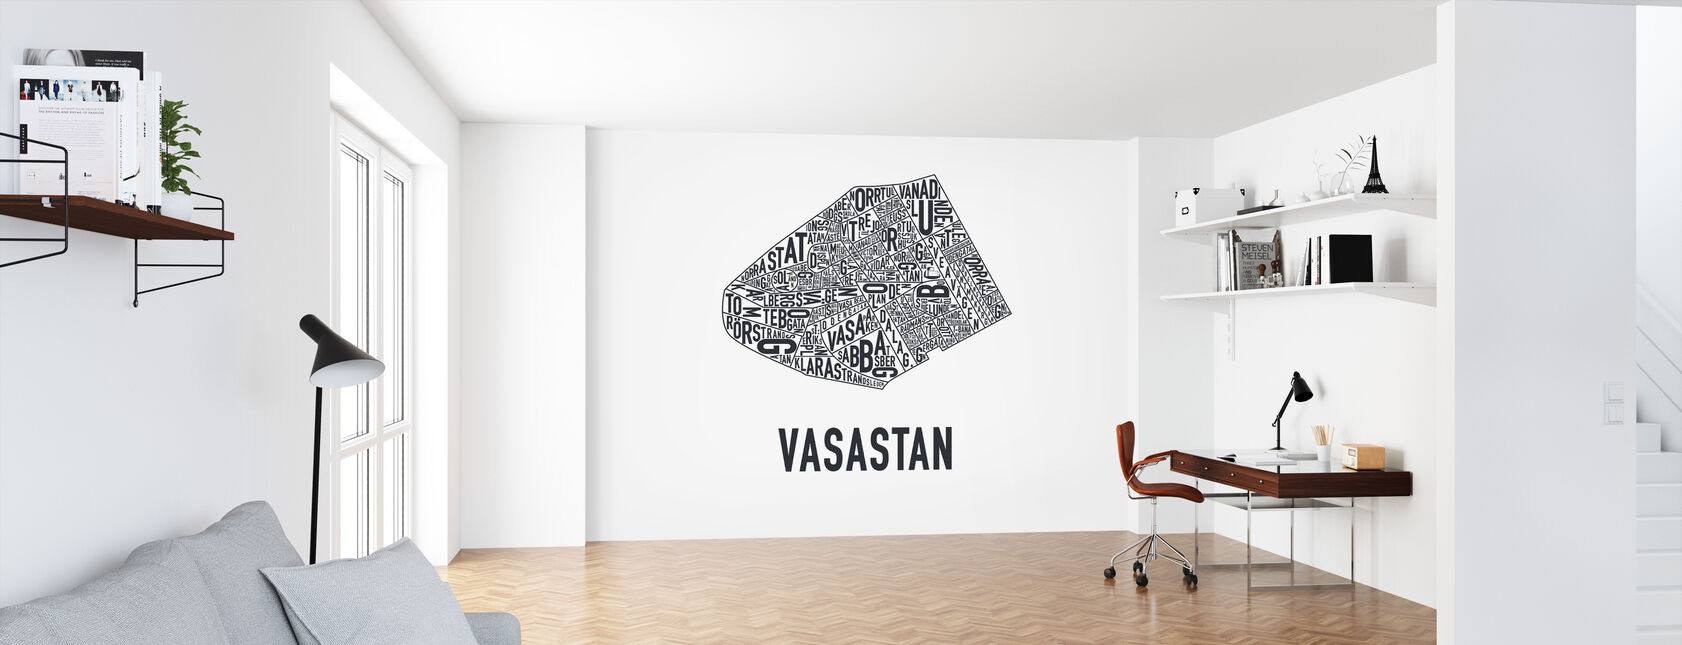 Vasastan - Wallpaper - Office